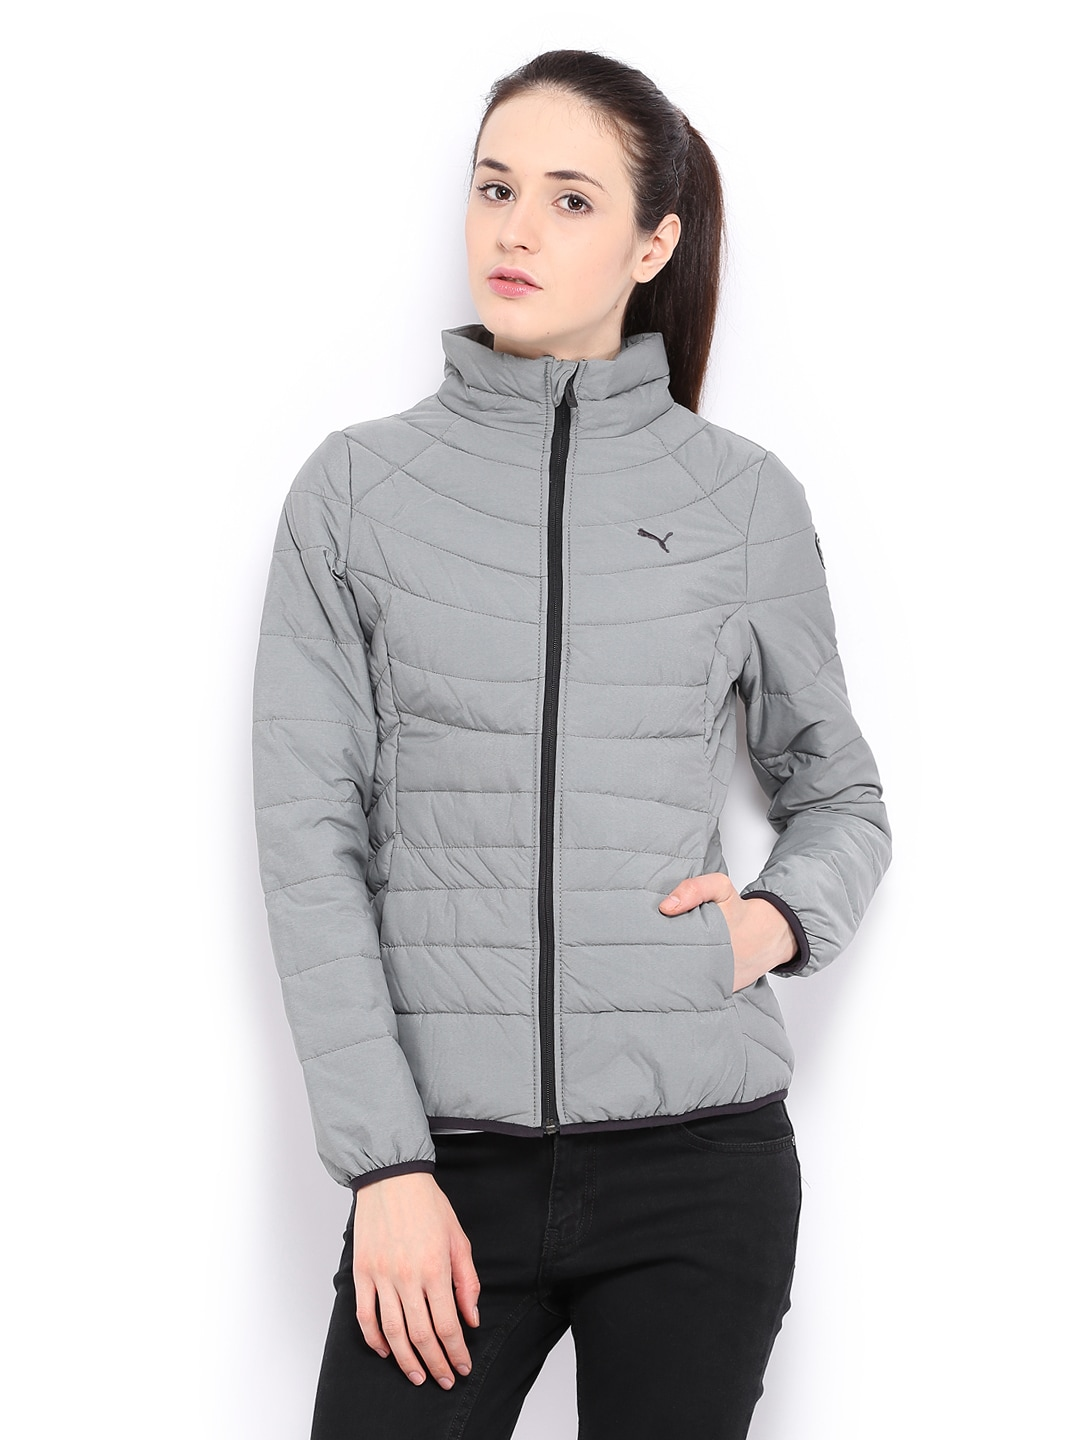 24704bde69a52 Buy Puma Women Grey Padded Jacket 1334310 for women online in india ...